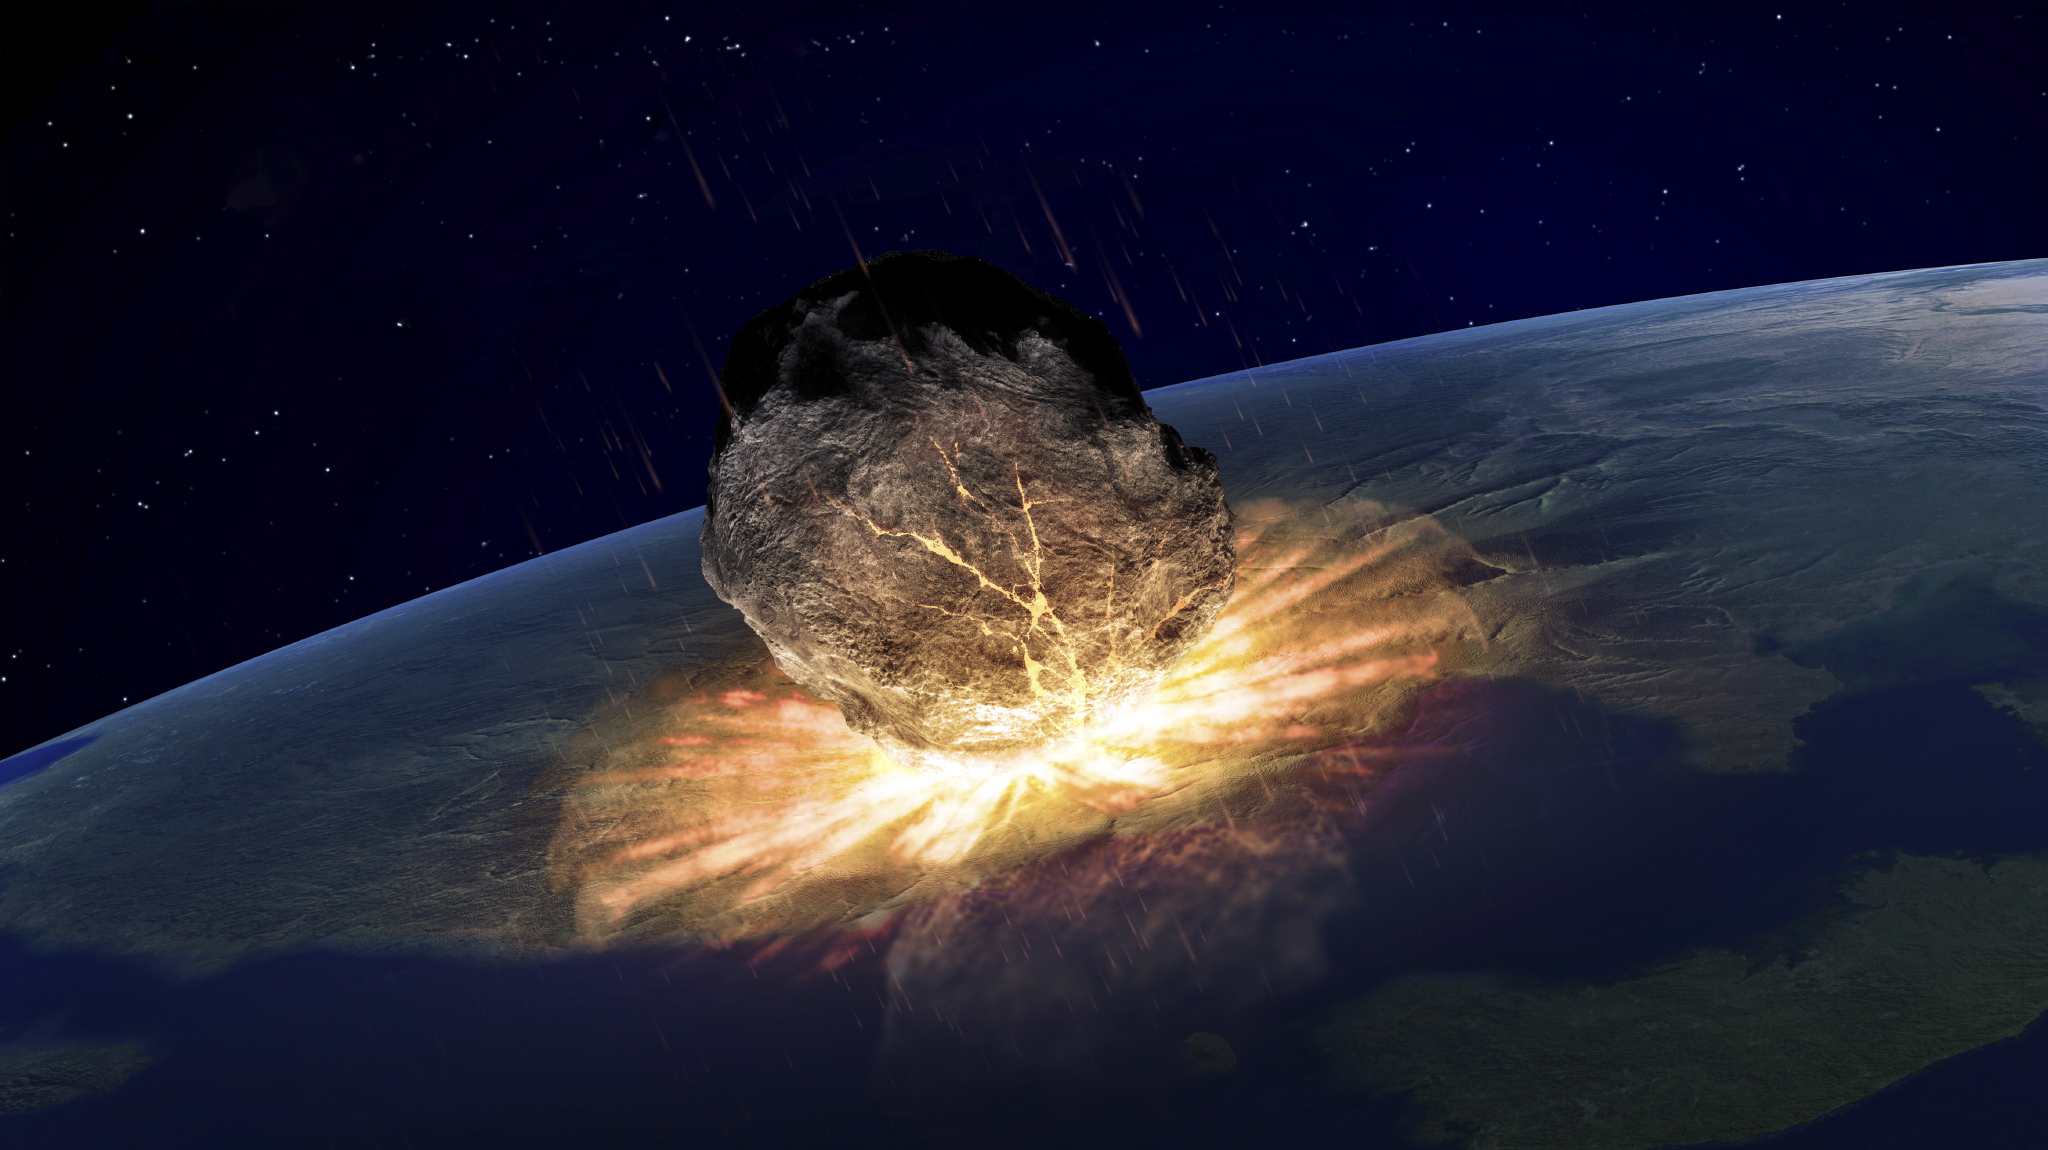 New Study Ranks Hazardous Asteroid Effects From Least to Most Destructive